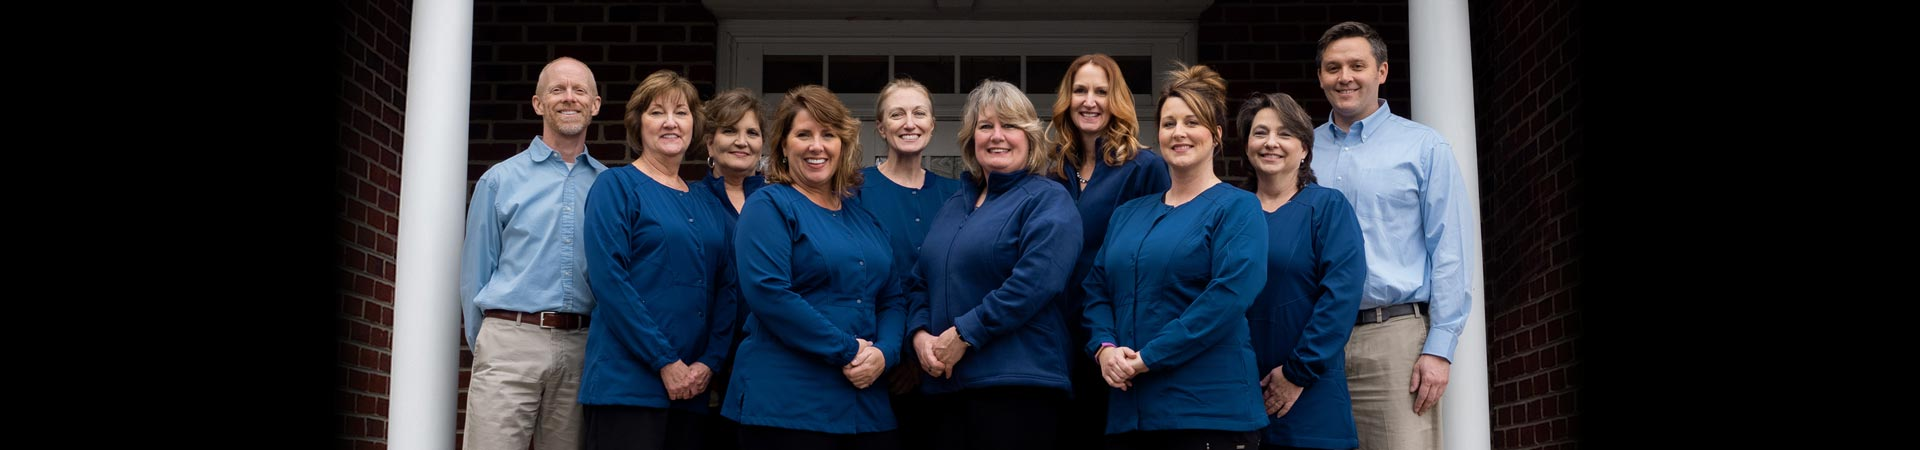 Dental Team in Roanoke, VA